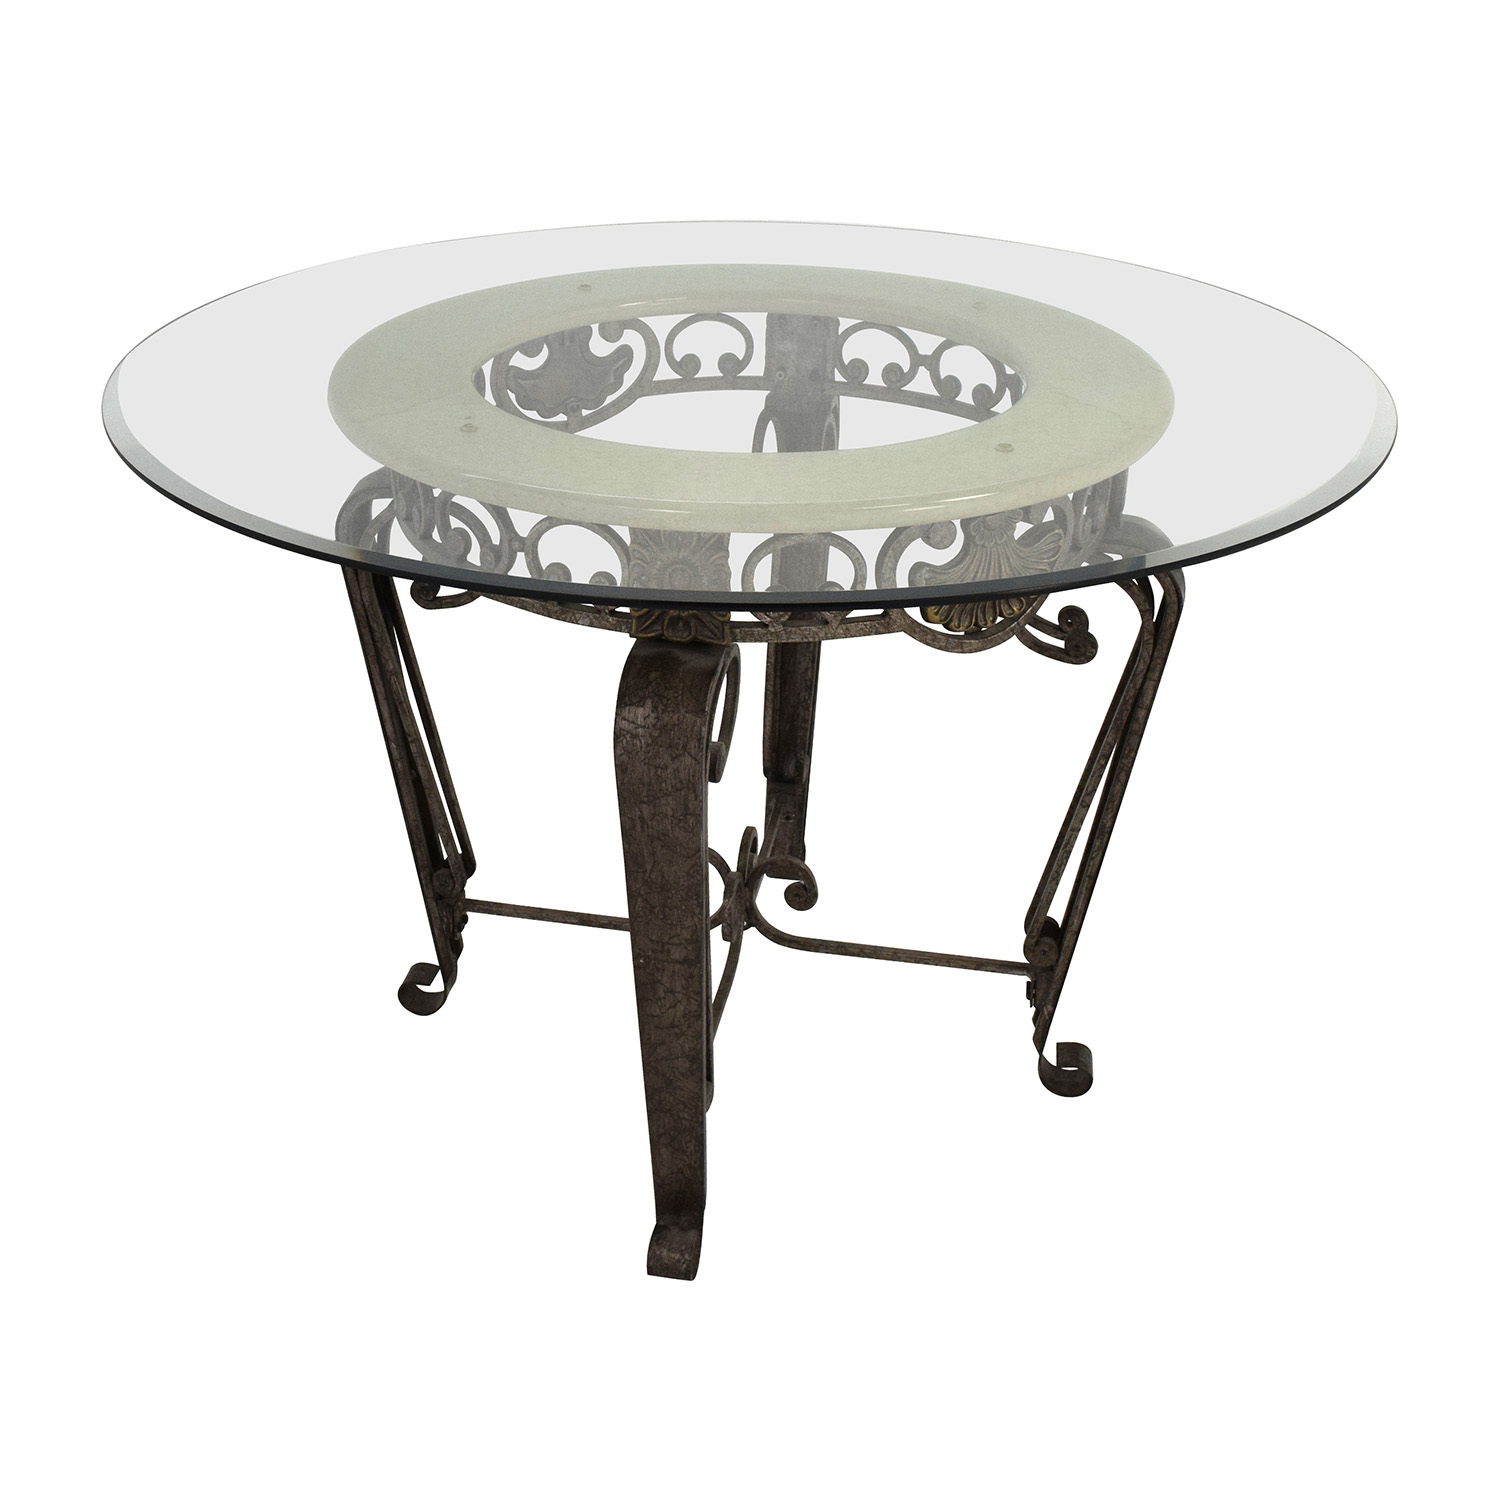 84 off scroll metal and glass top dining table tables for Glass dining table